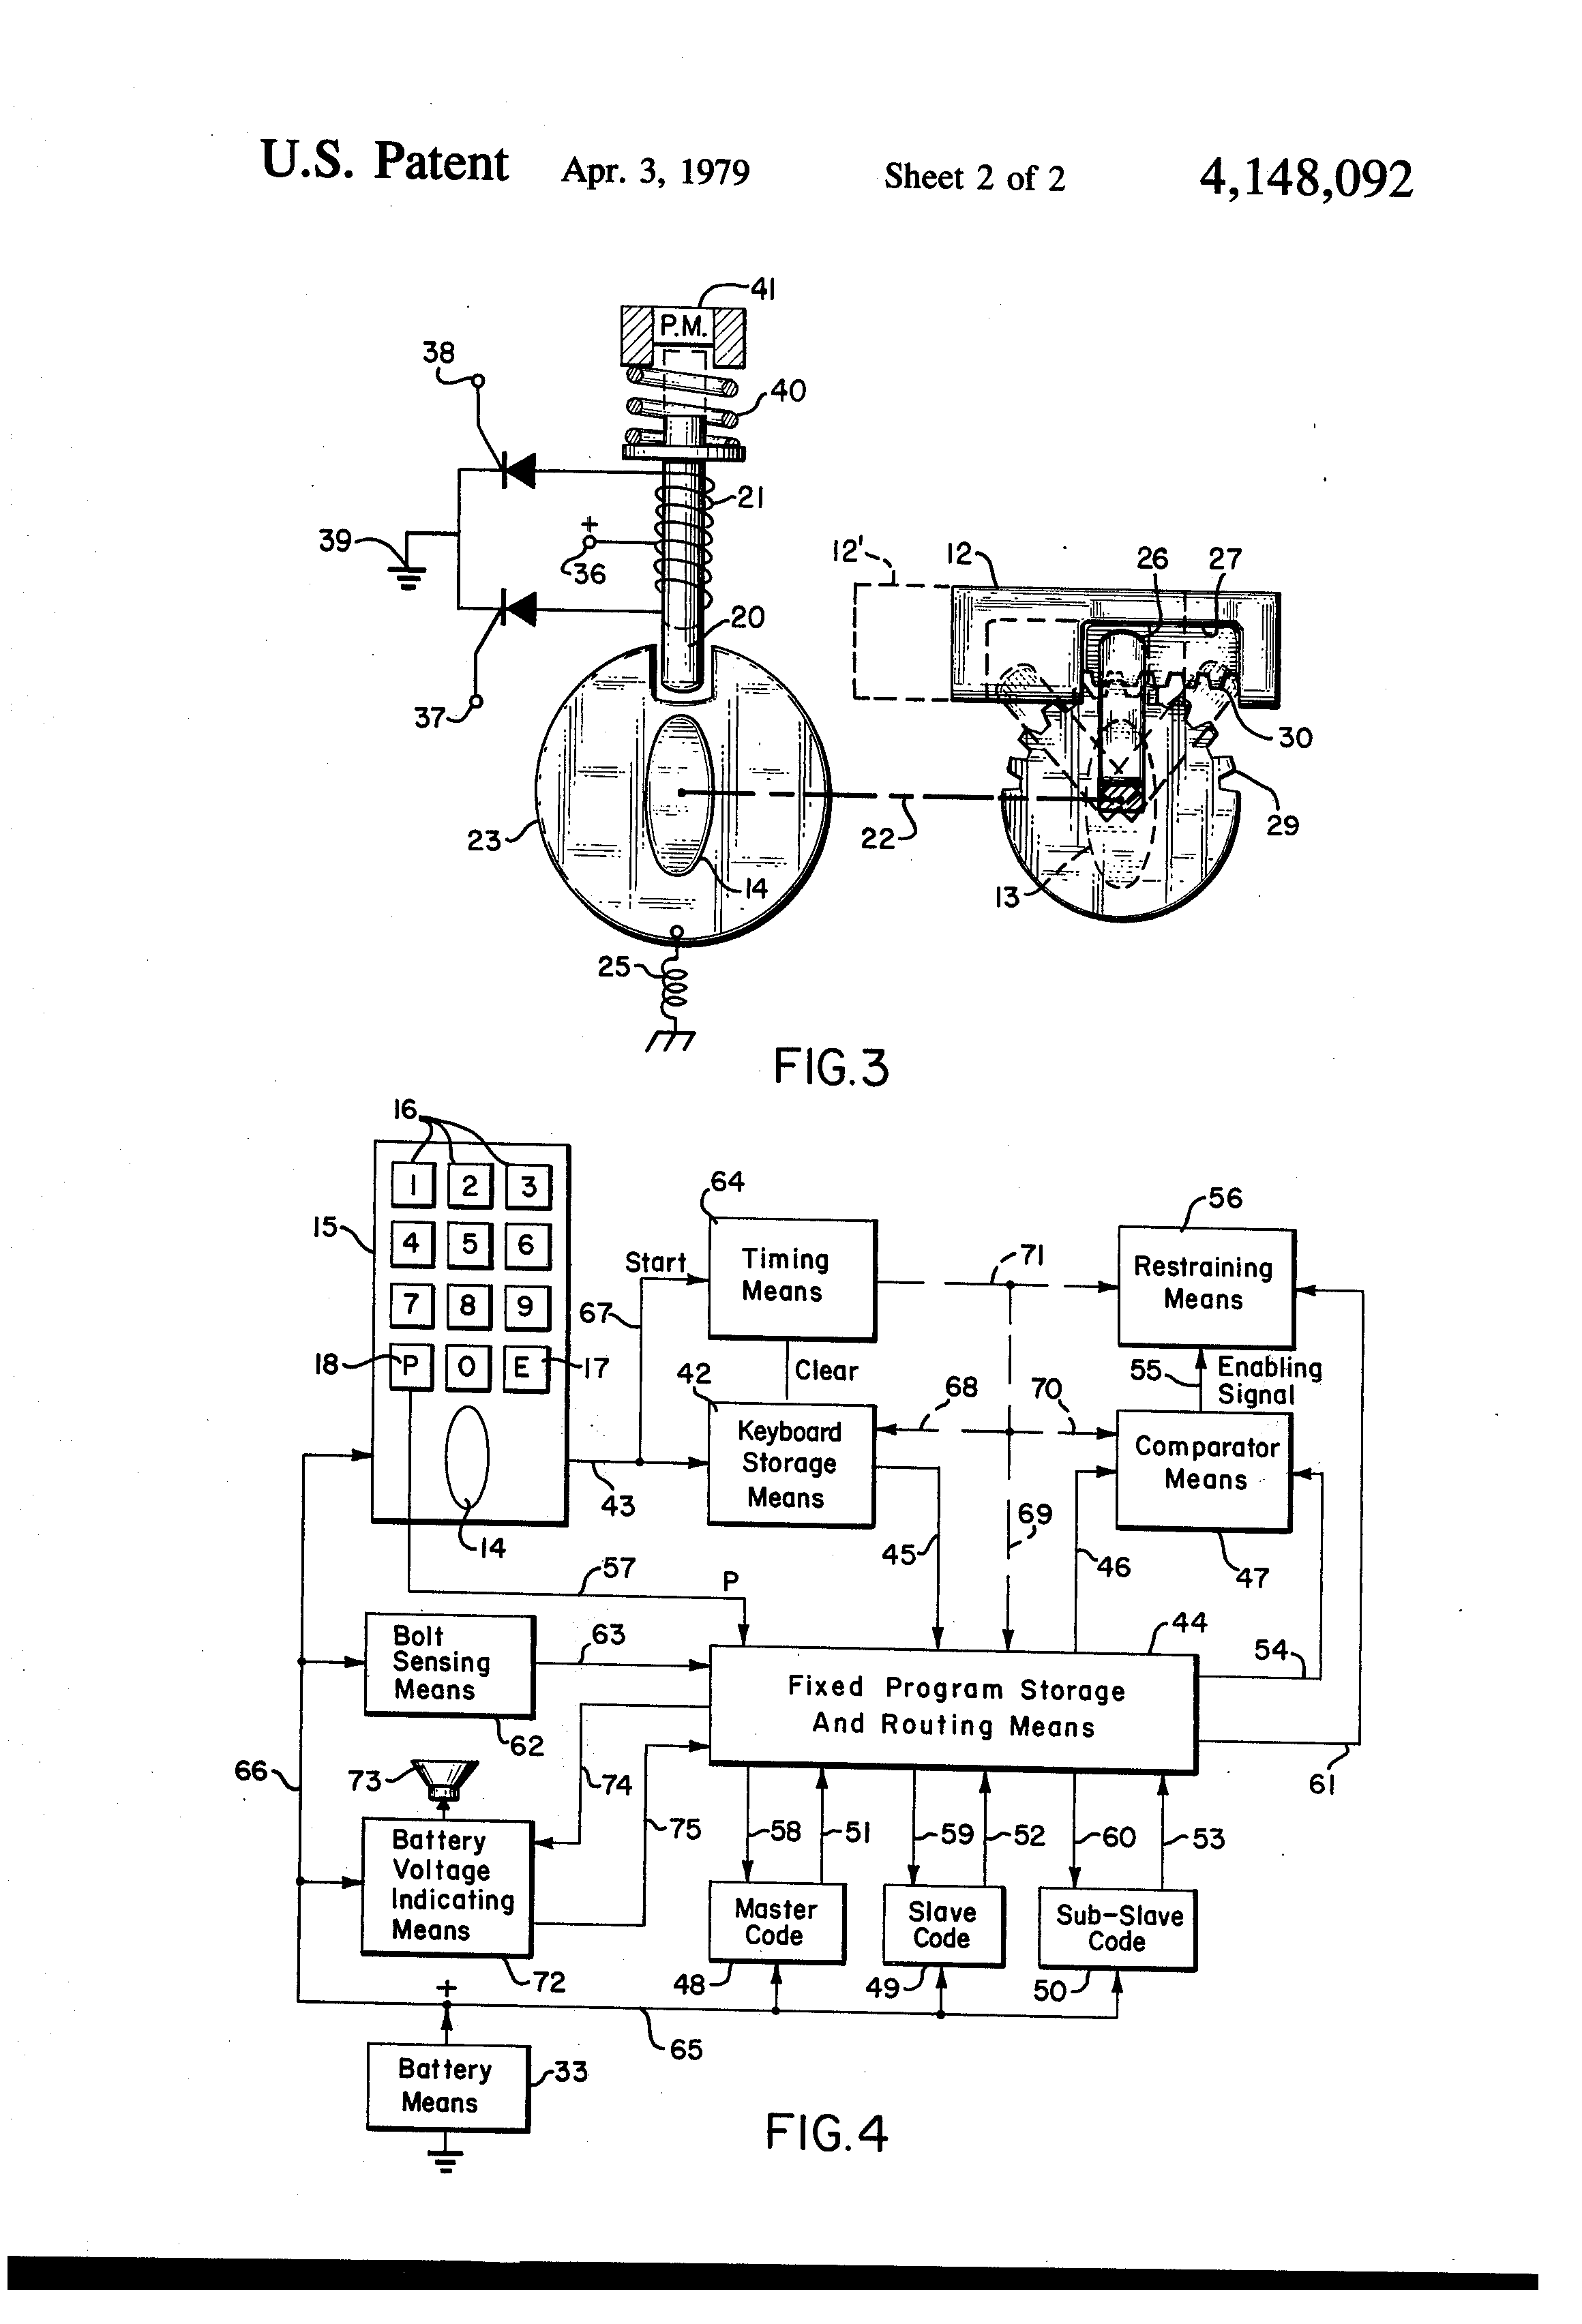 Electric Circuit Drawing At Free For Personal Use Draw Wiring Diagrams 2320x3408 Electronic Lock Diagram Components